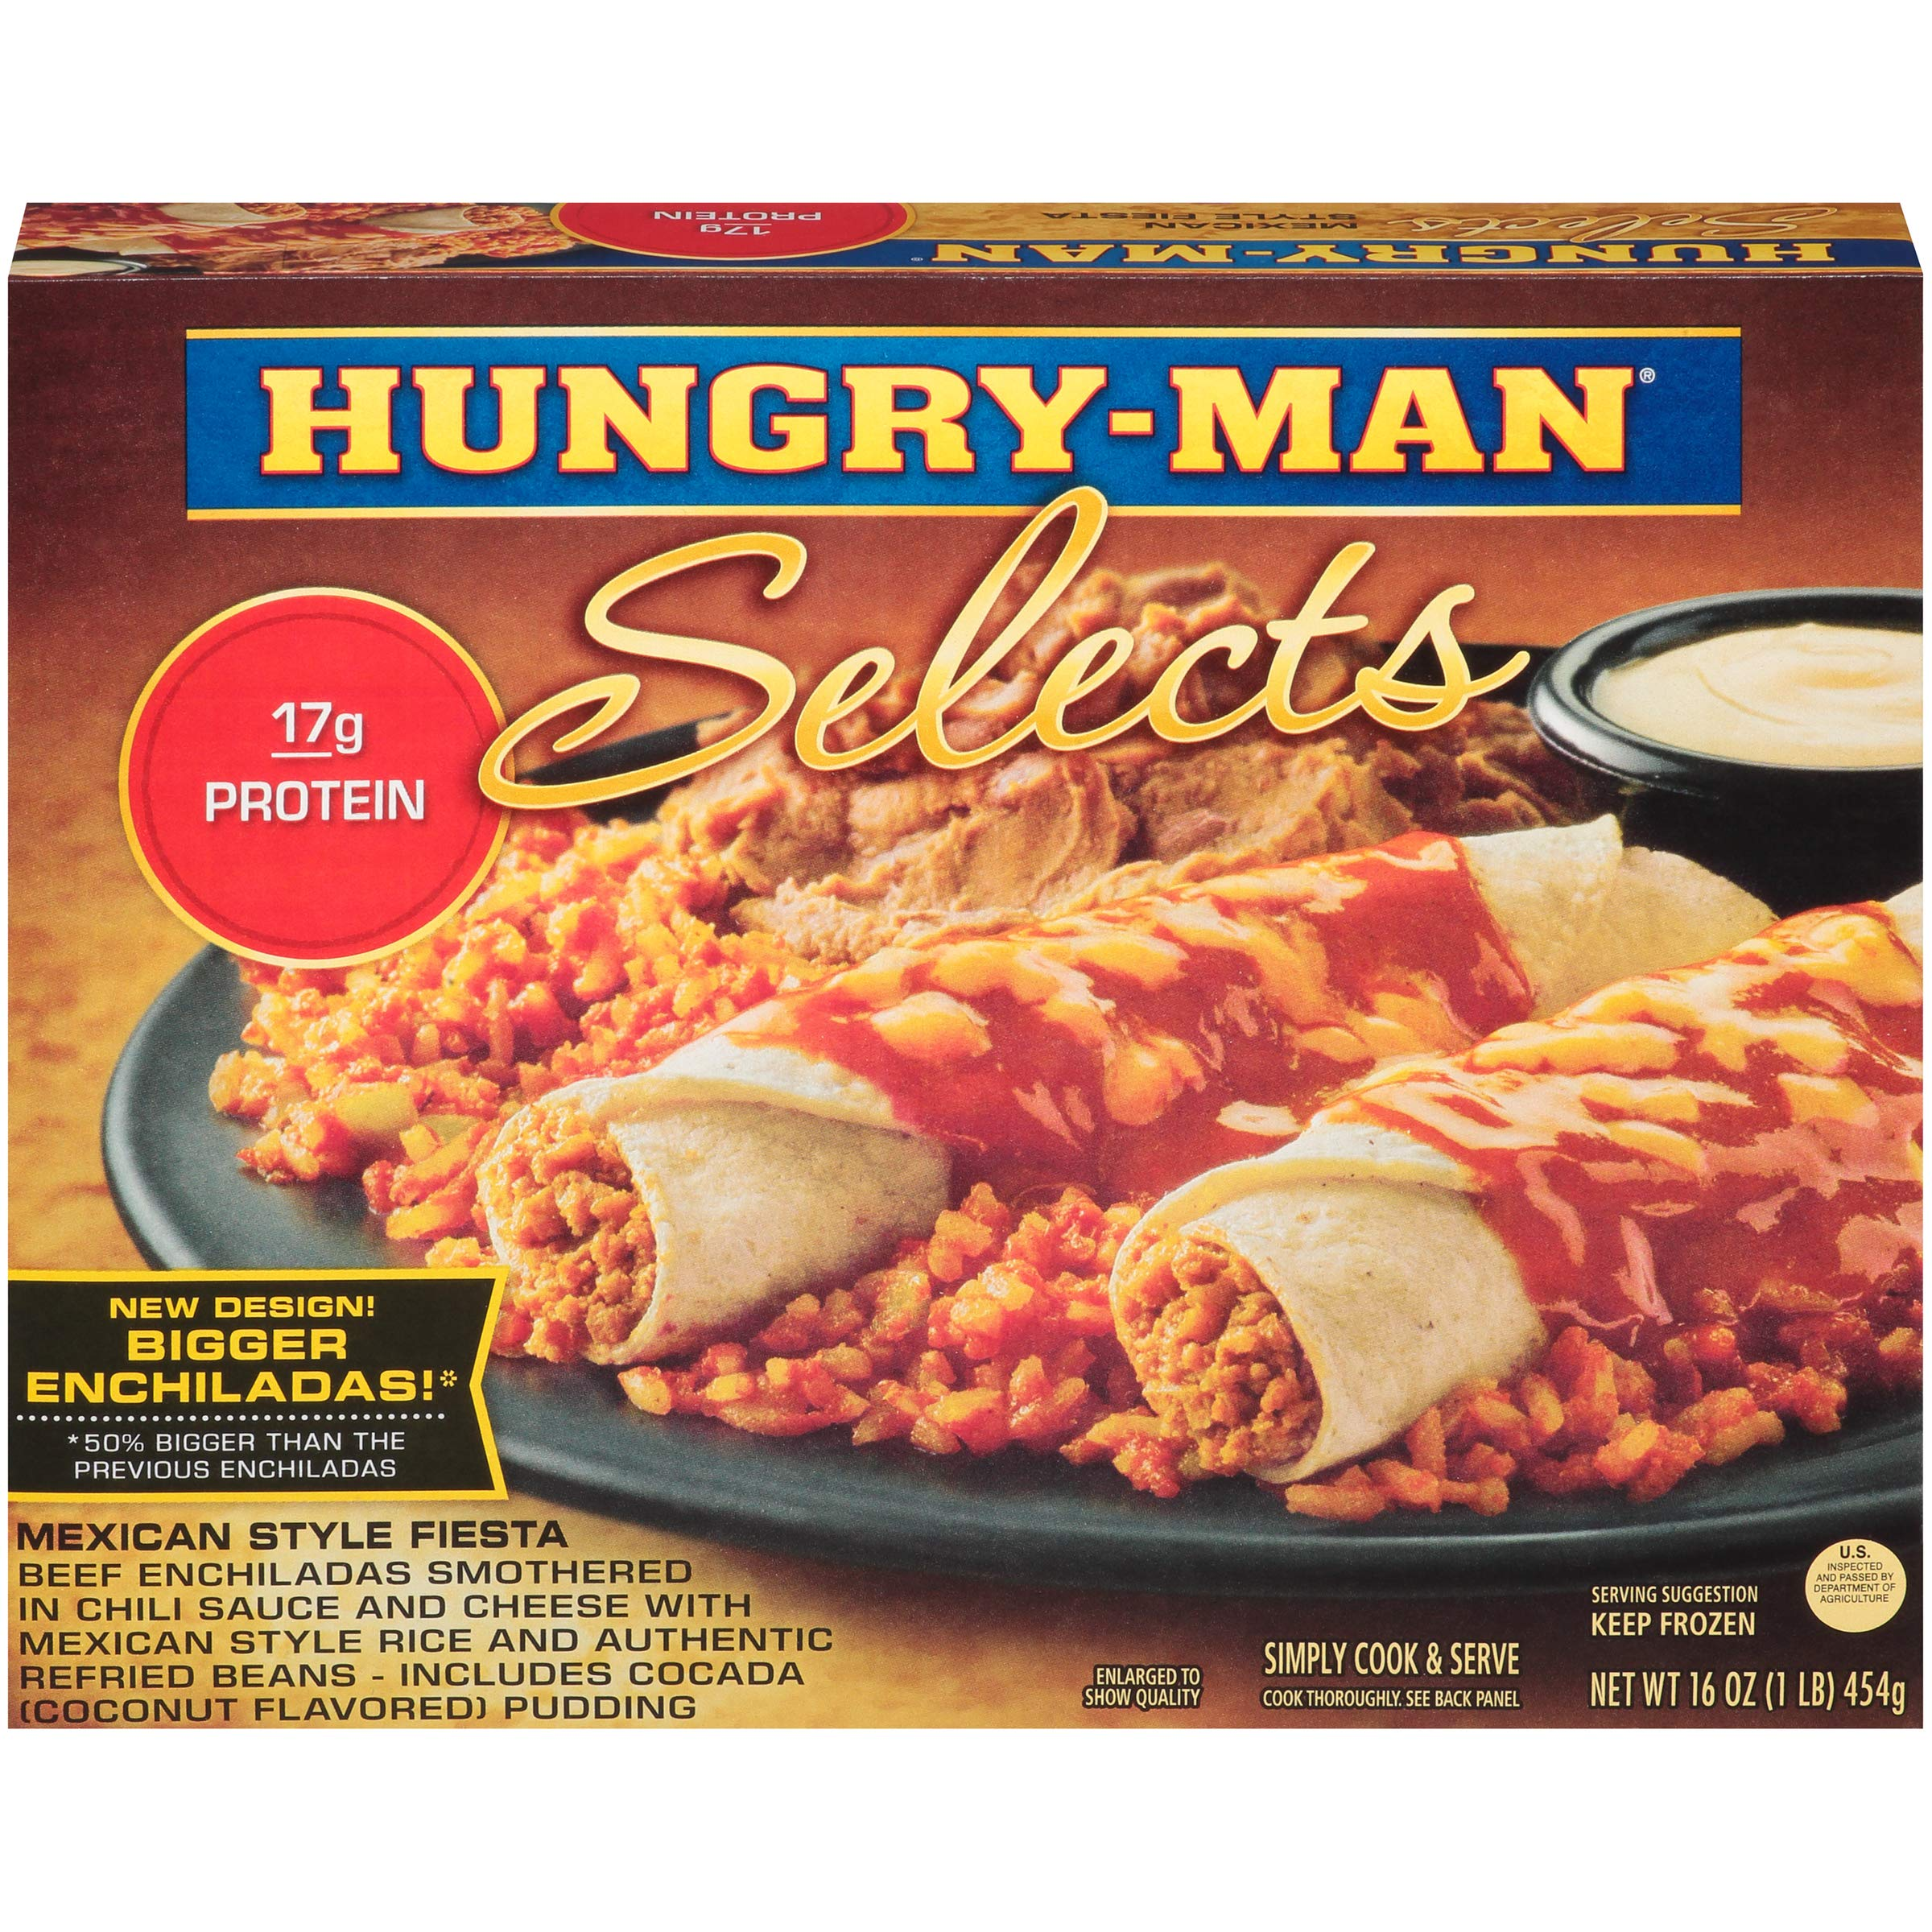 Hungry Man Selects Beef Enchiladas Mexican Style Fiesta 16 oz Pack of 8